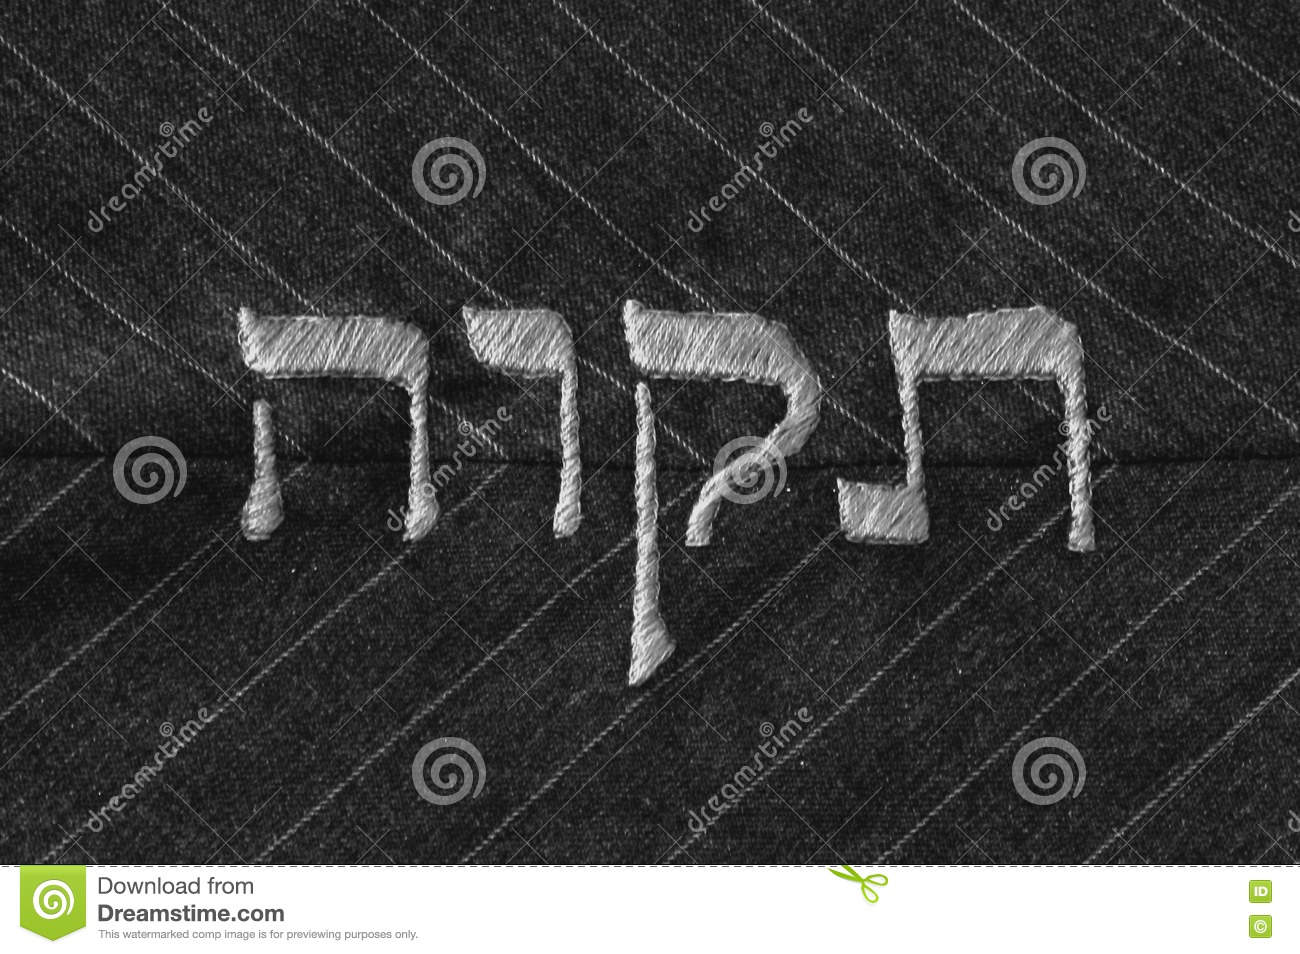 Hope In Hebrew Language, Stitched On Fabric - Monochrome